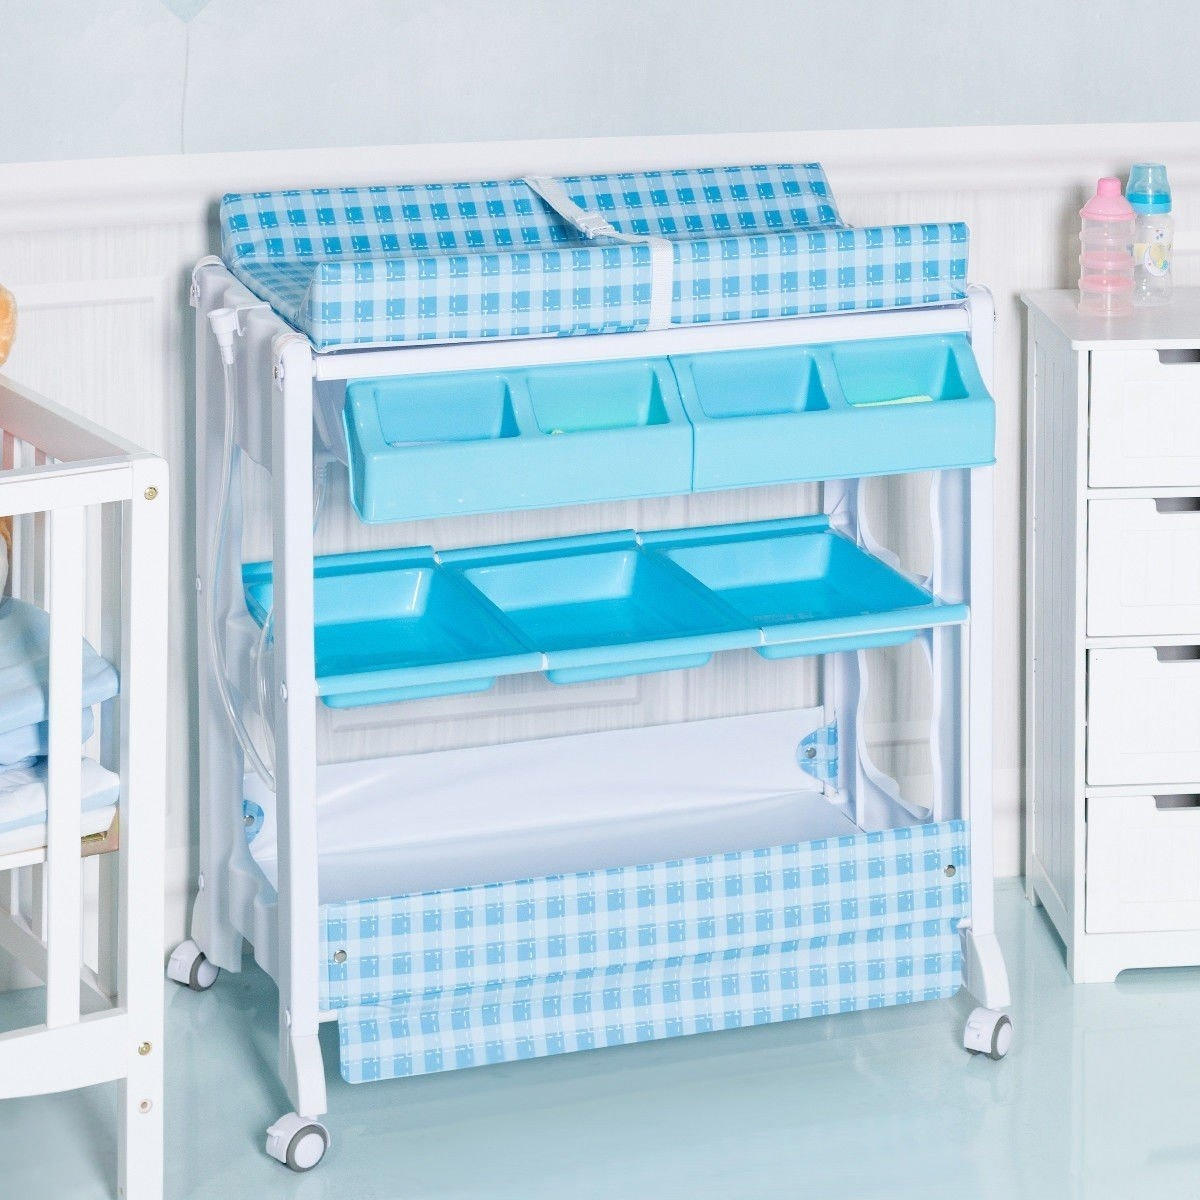 Baby Bath And Stand Baby: Buy Online from Fishpond.co.nz